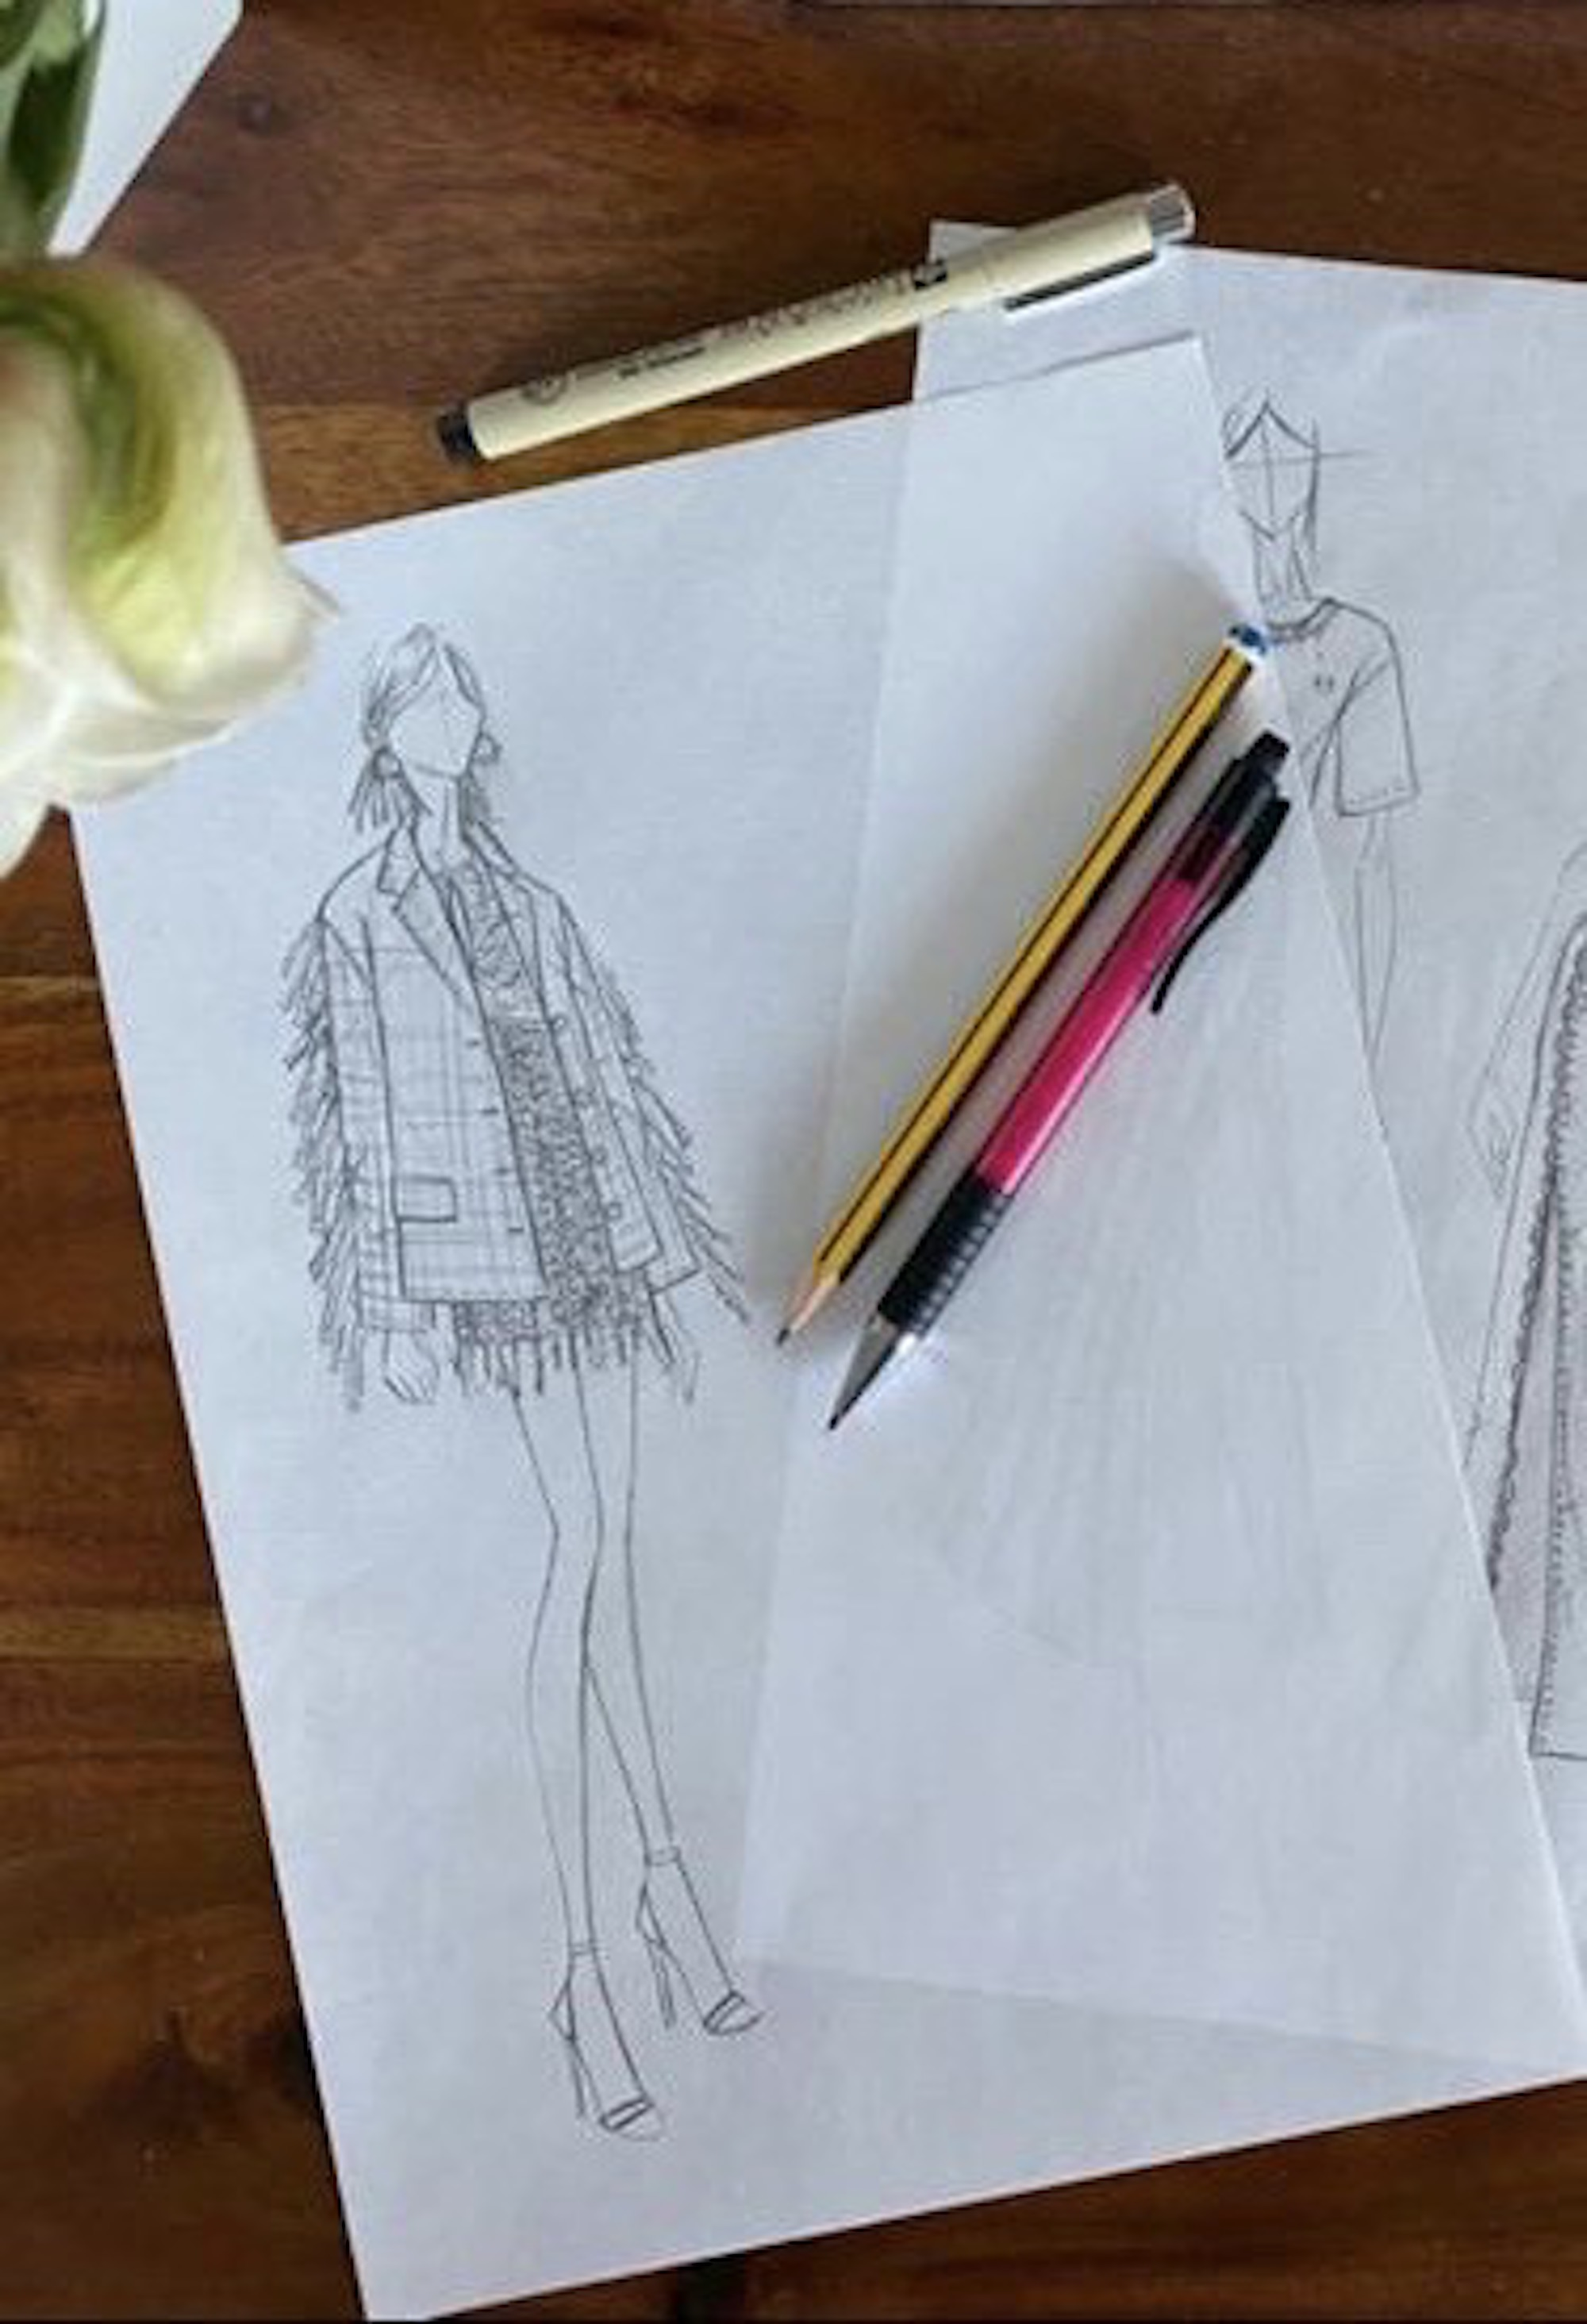 Drawings from the creative director of pinko